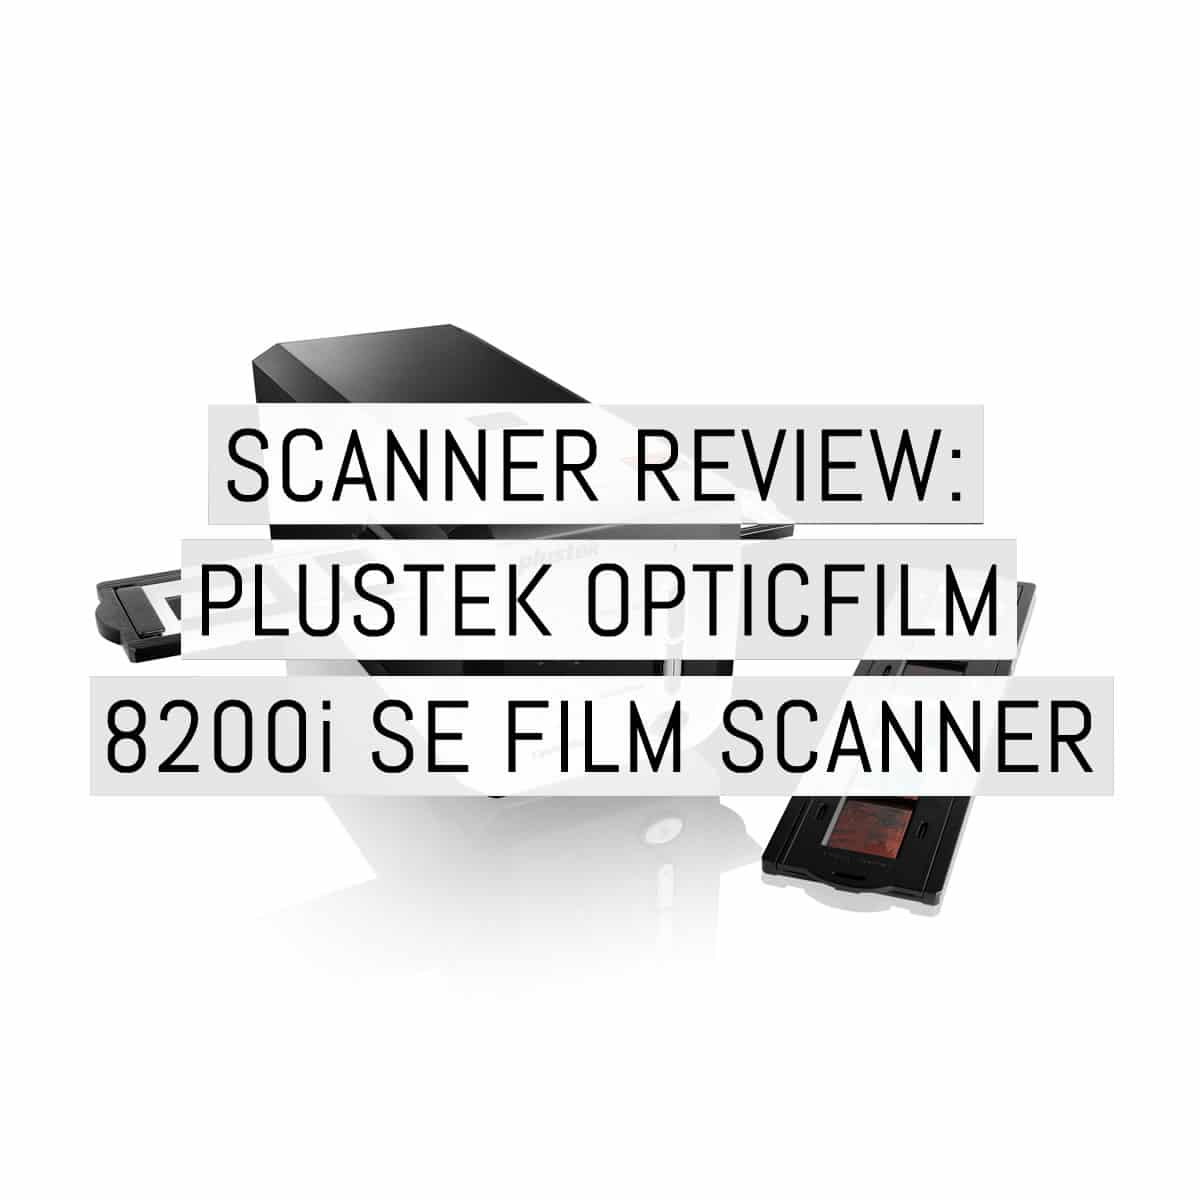 Scanner review: PLUSTEK OPTICFILM 8200iSE 35mm film scanner - by Olli Thomson